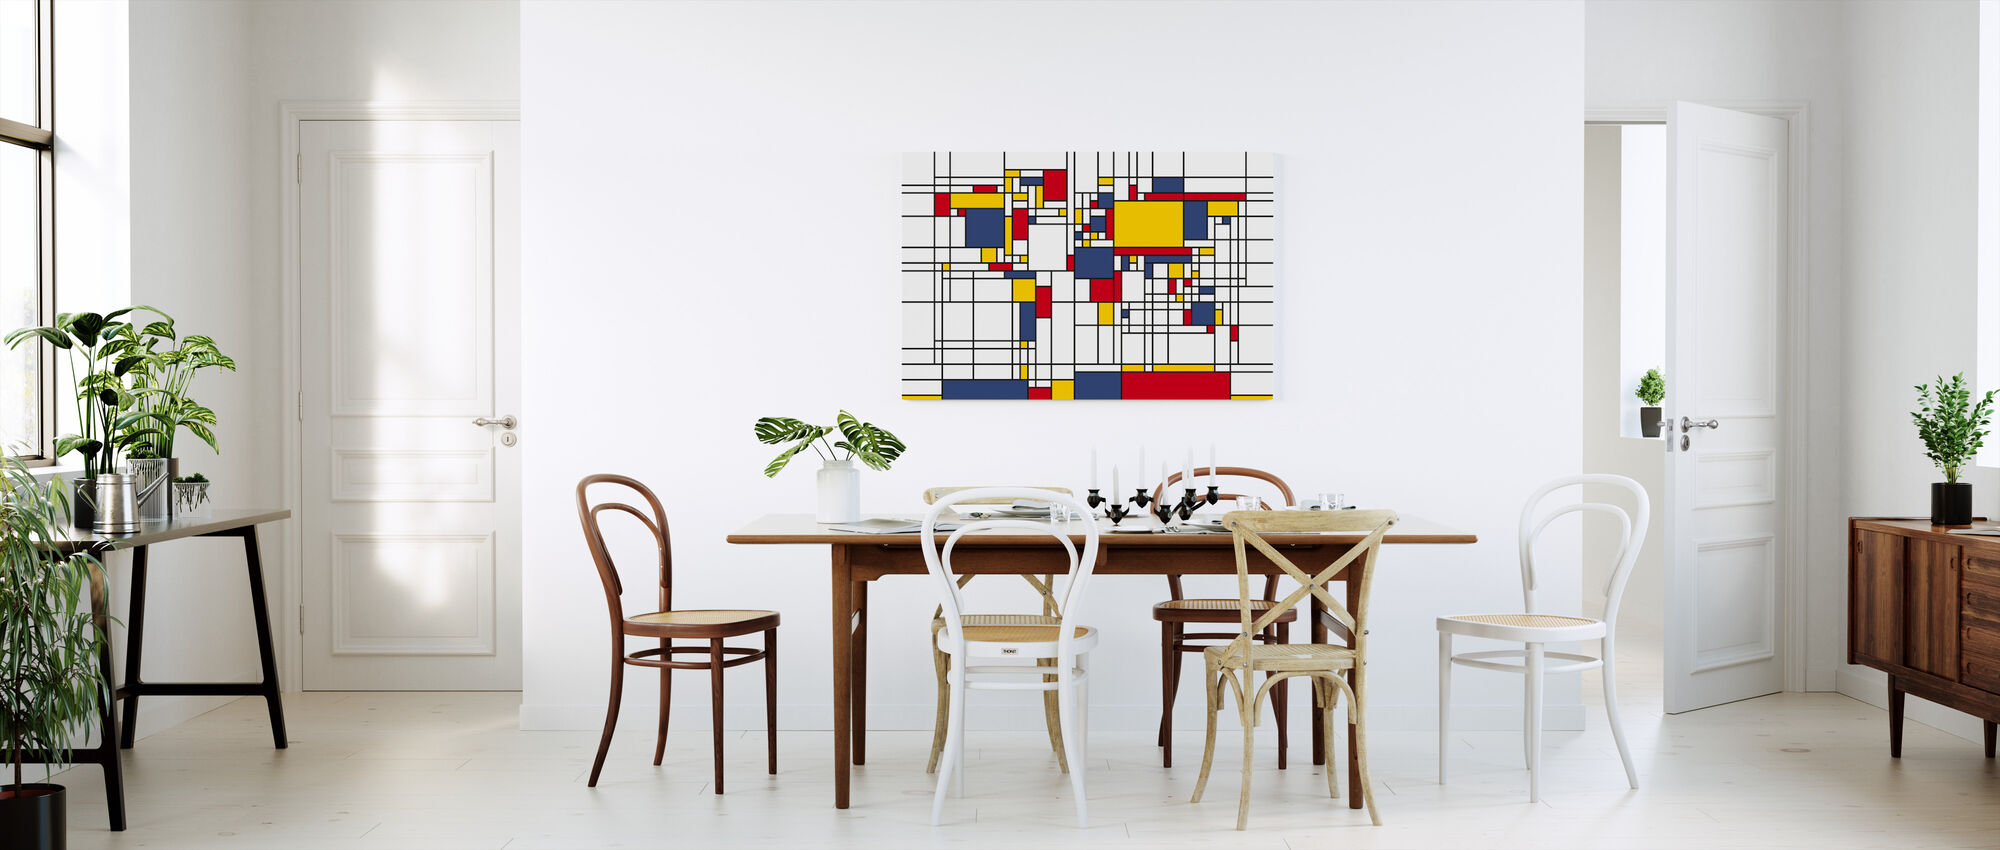 Piet Mondrian Style World Map - Canvas print - Kitchen